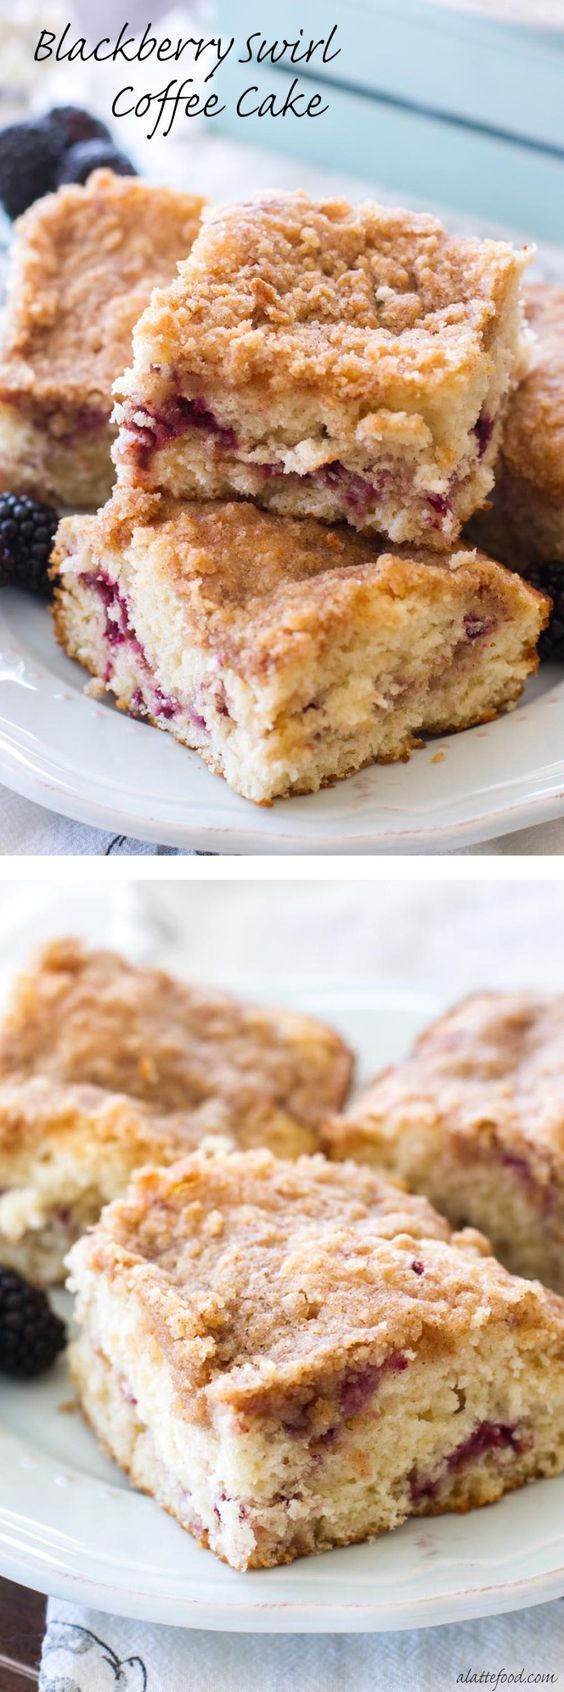 This Blackberry Coffee Cake recipe is a simple yet elegant addition to any breakfast, brunch, or afternoon coffee break! It's light, fluffy, filled with a blackberry puree, and topped with a sweet bro (Coffee Cake)